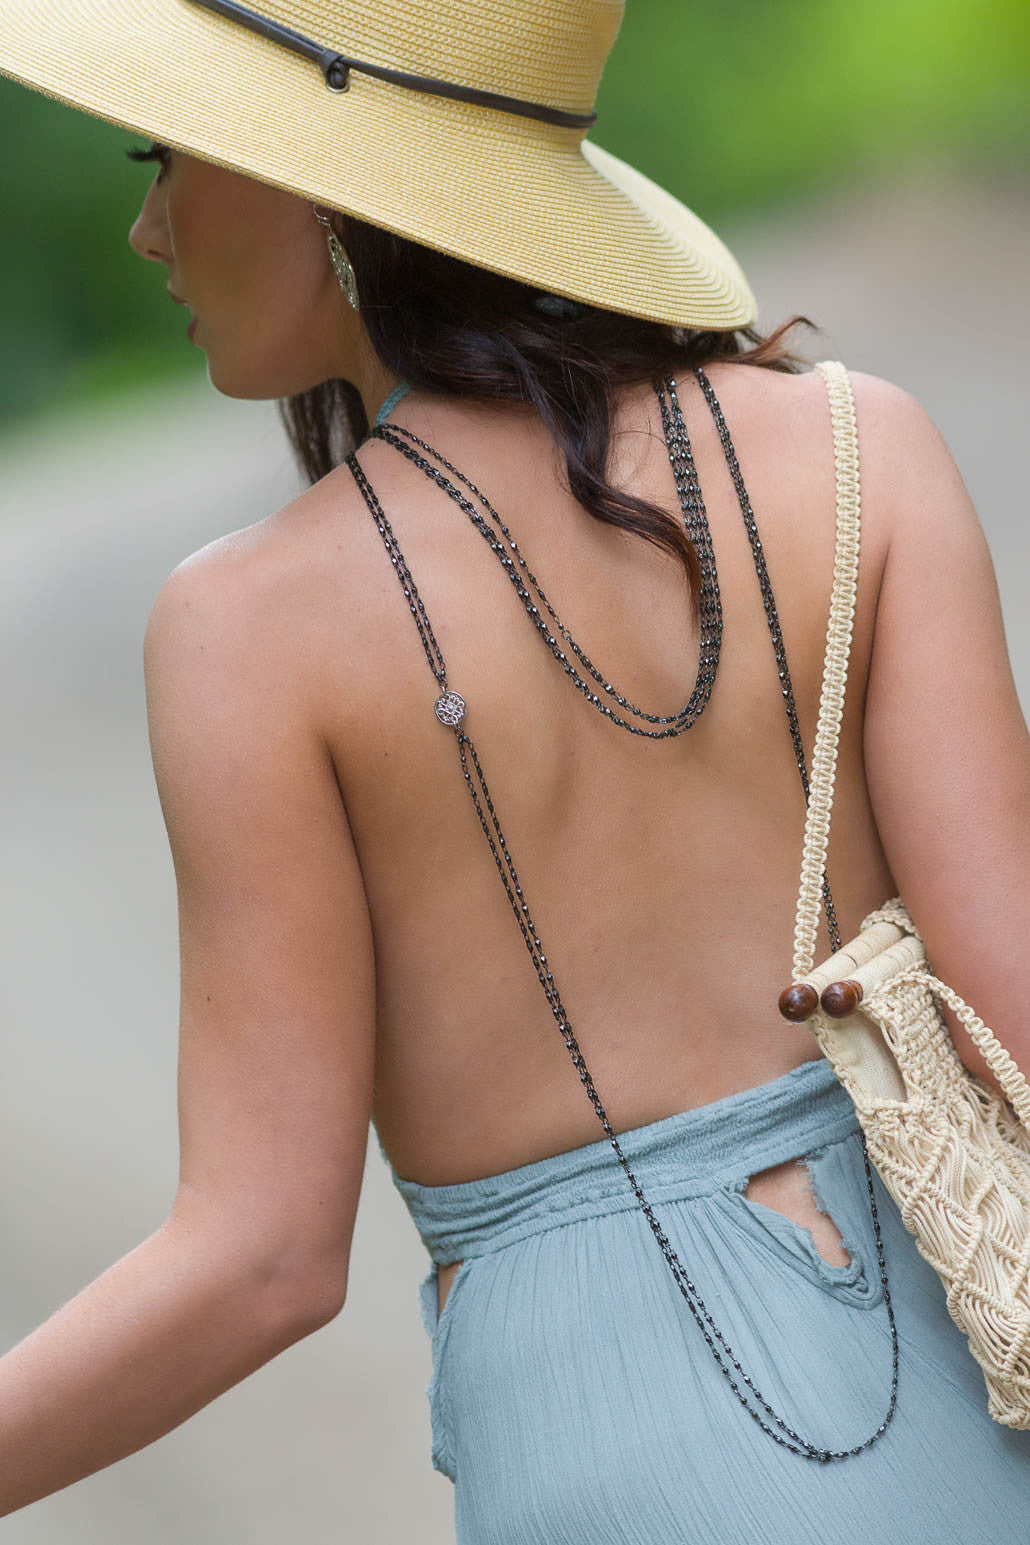 The Road Less Traveled Jewelry Lookbook | Criscara